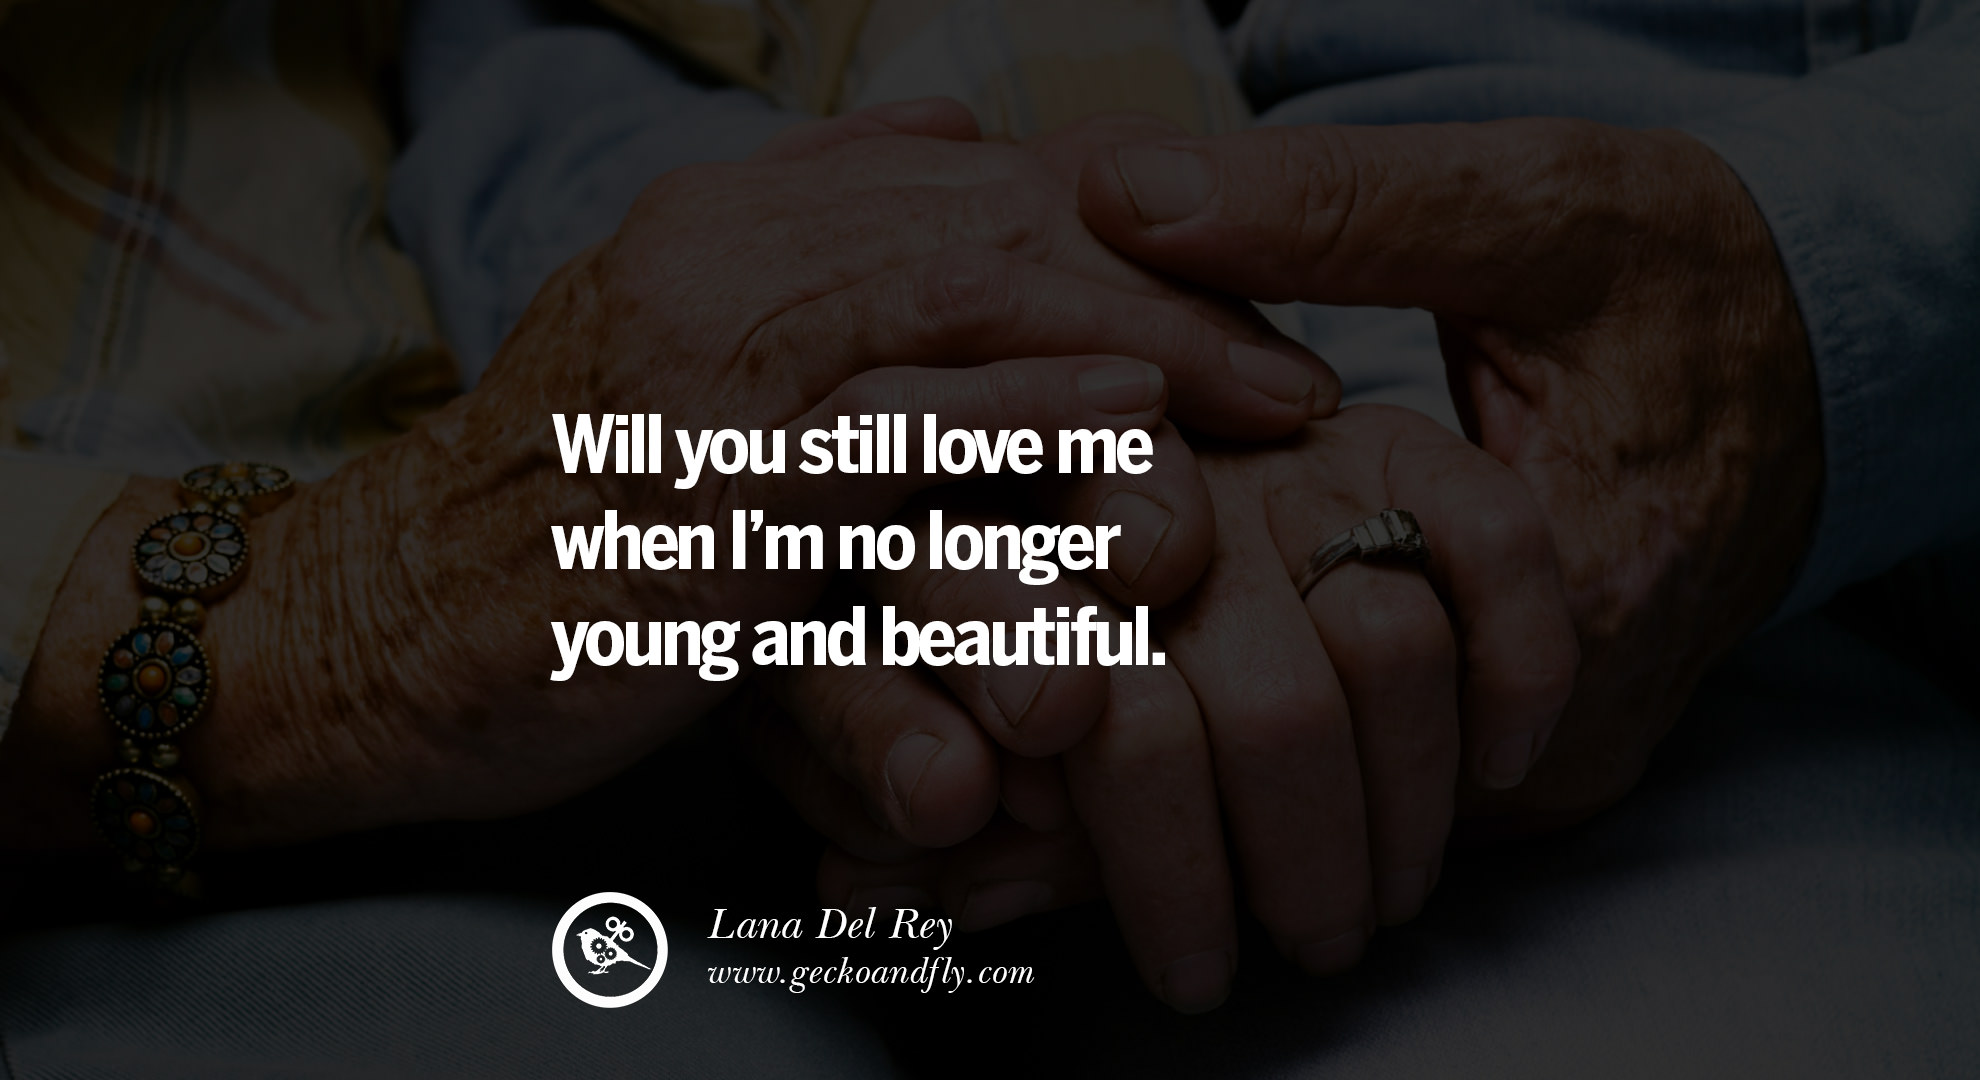 Life Quotes Love 40 Romantic Quotes About Love Life Marriage And Relationships